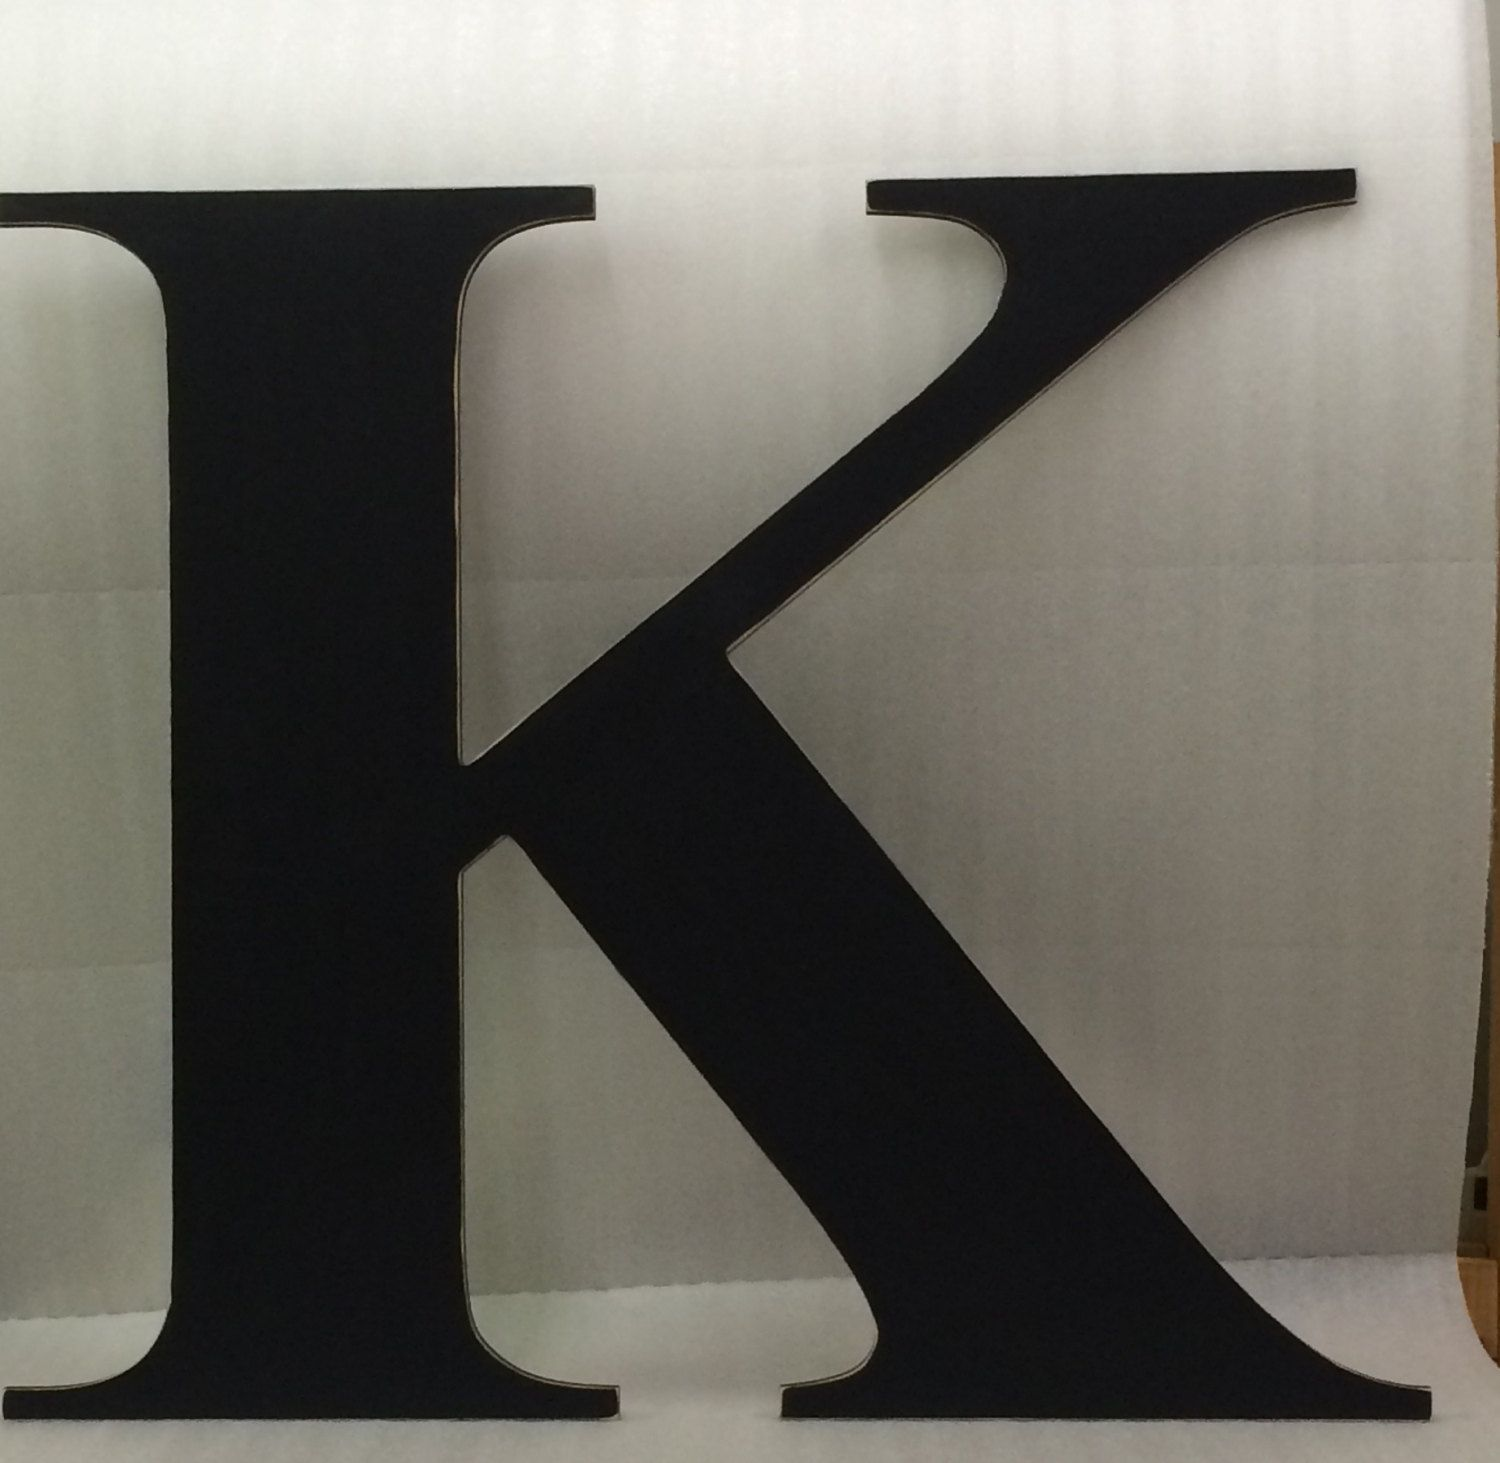 Wooden Letter K Capital 36 Wedding Guest Book Unique Alternate Wall Decor Dorm Room Guestbook Crafted Sign By Asimpleplaceonmain